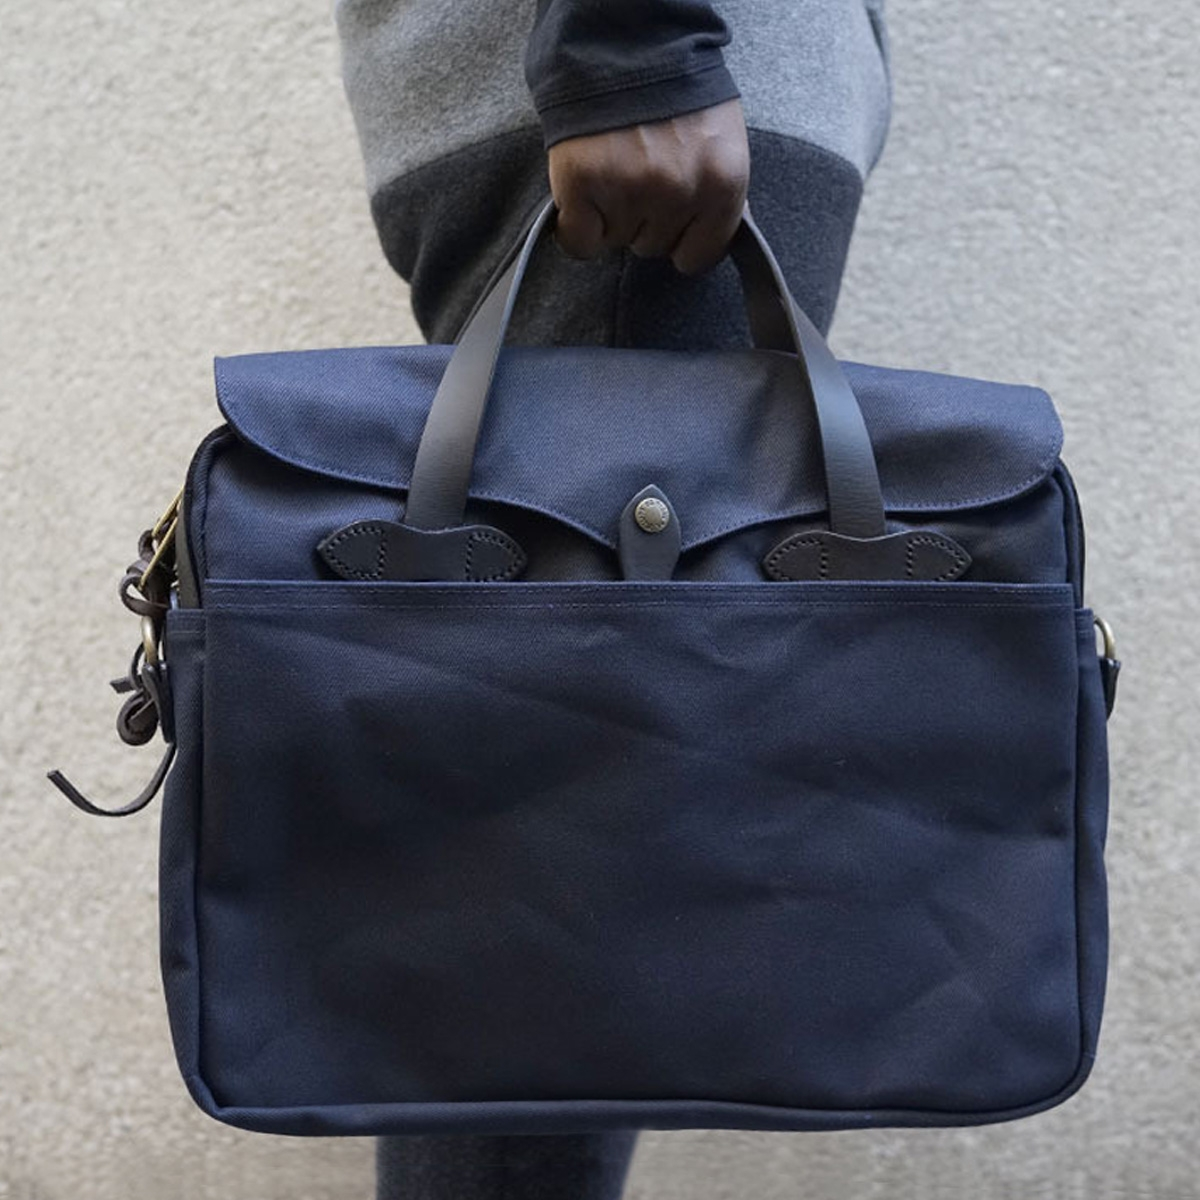 Filson Original Briefcase 11070256 Navy, extraordinary bag for an ordinary day